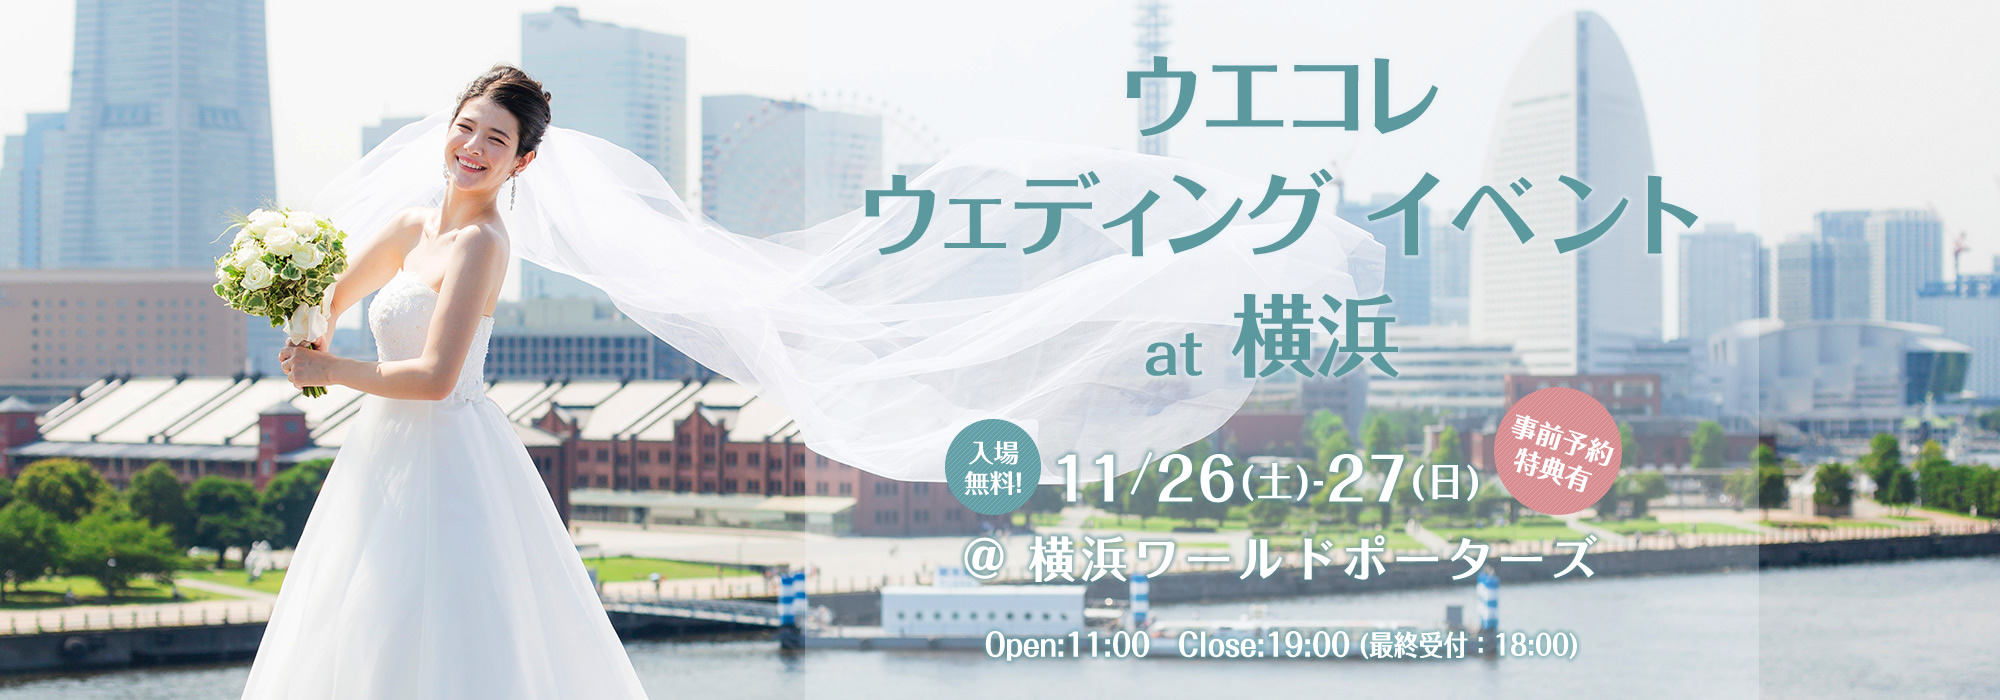 Wecolle Wedding Event in Yokohama 11/26(土),27(日)開催決定!!